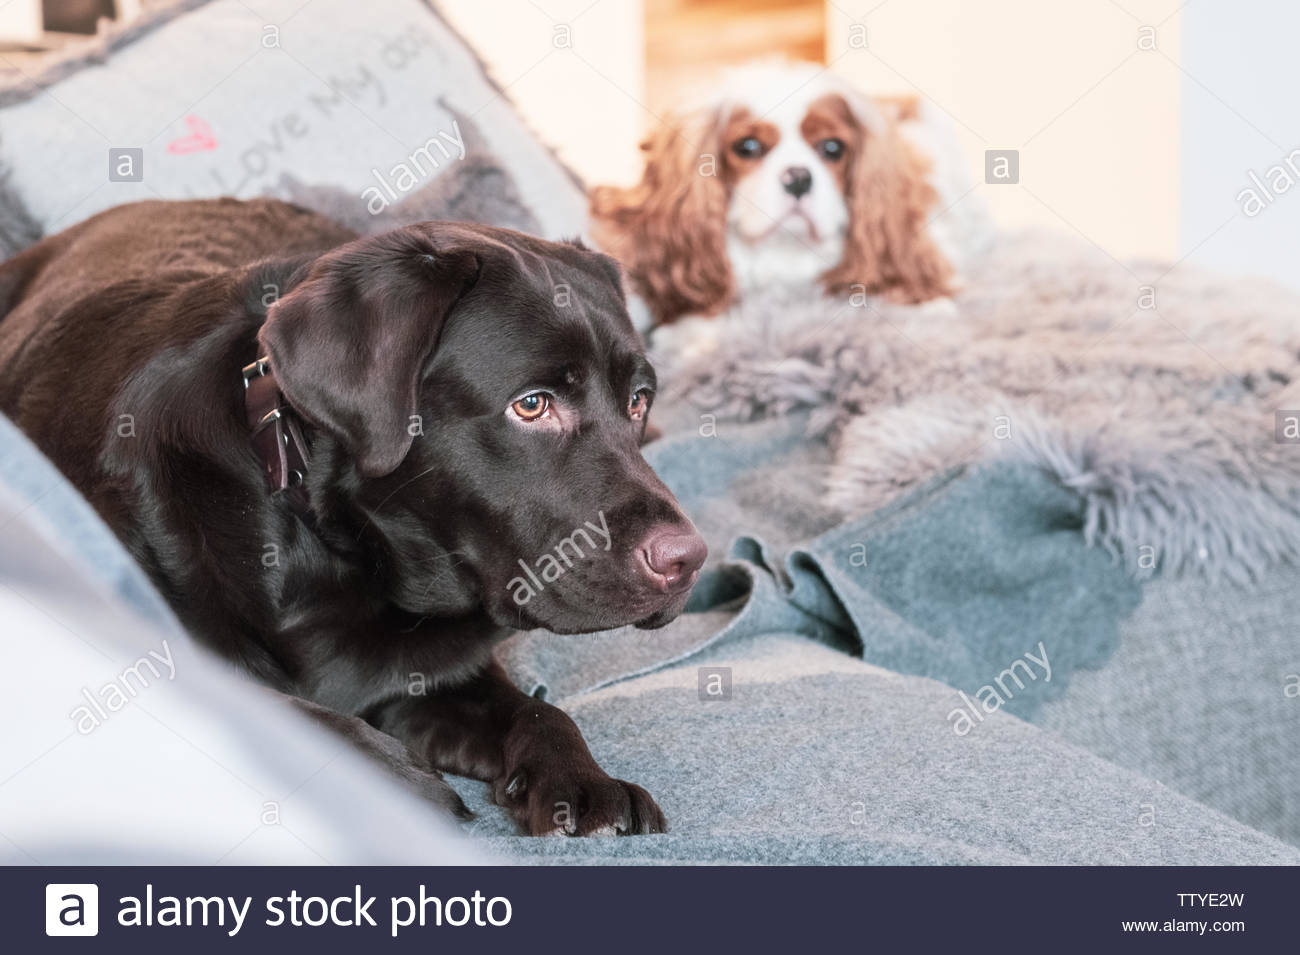 Bored Dogs Stock Photos & Bored Dogs Stock Images - Alamy